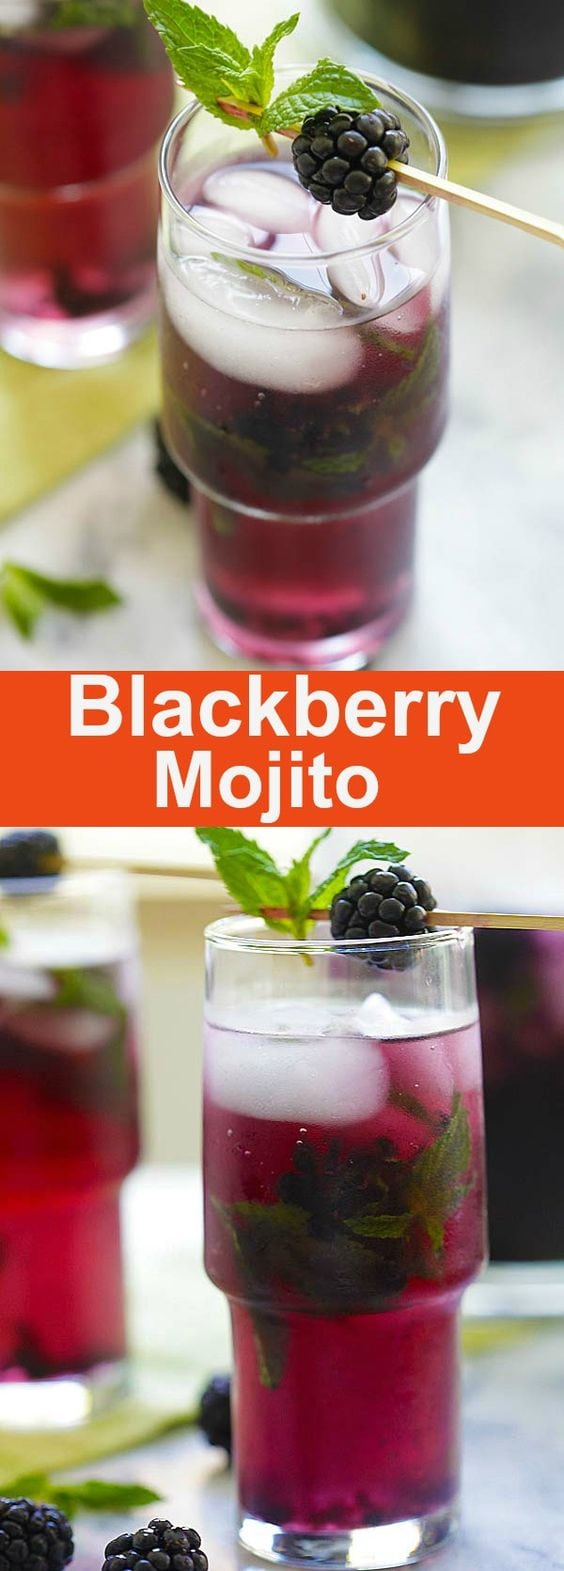 Blackberry Mojito - classic mojito cocktail with loads of blackberry. Fruitiest and booziest homemade mojito recipe ever | rasamalaysia.com